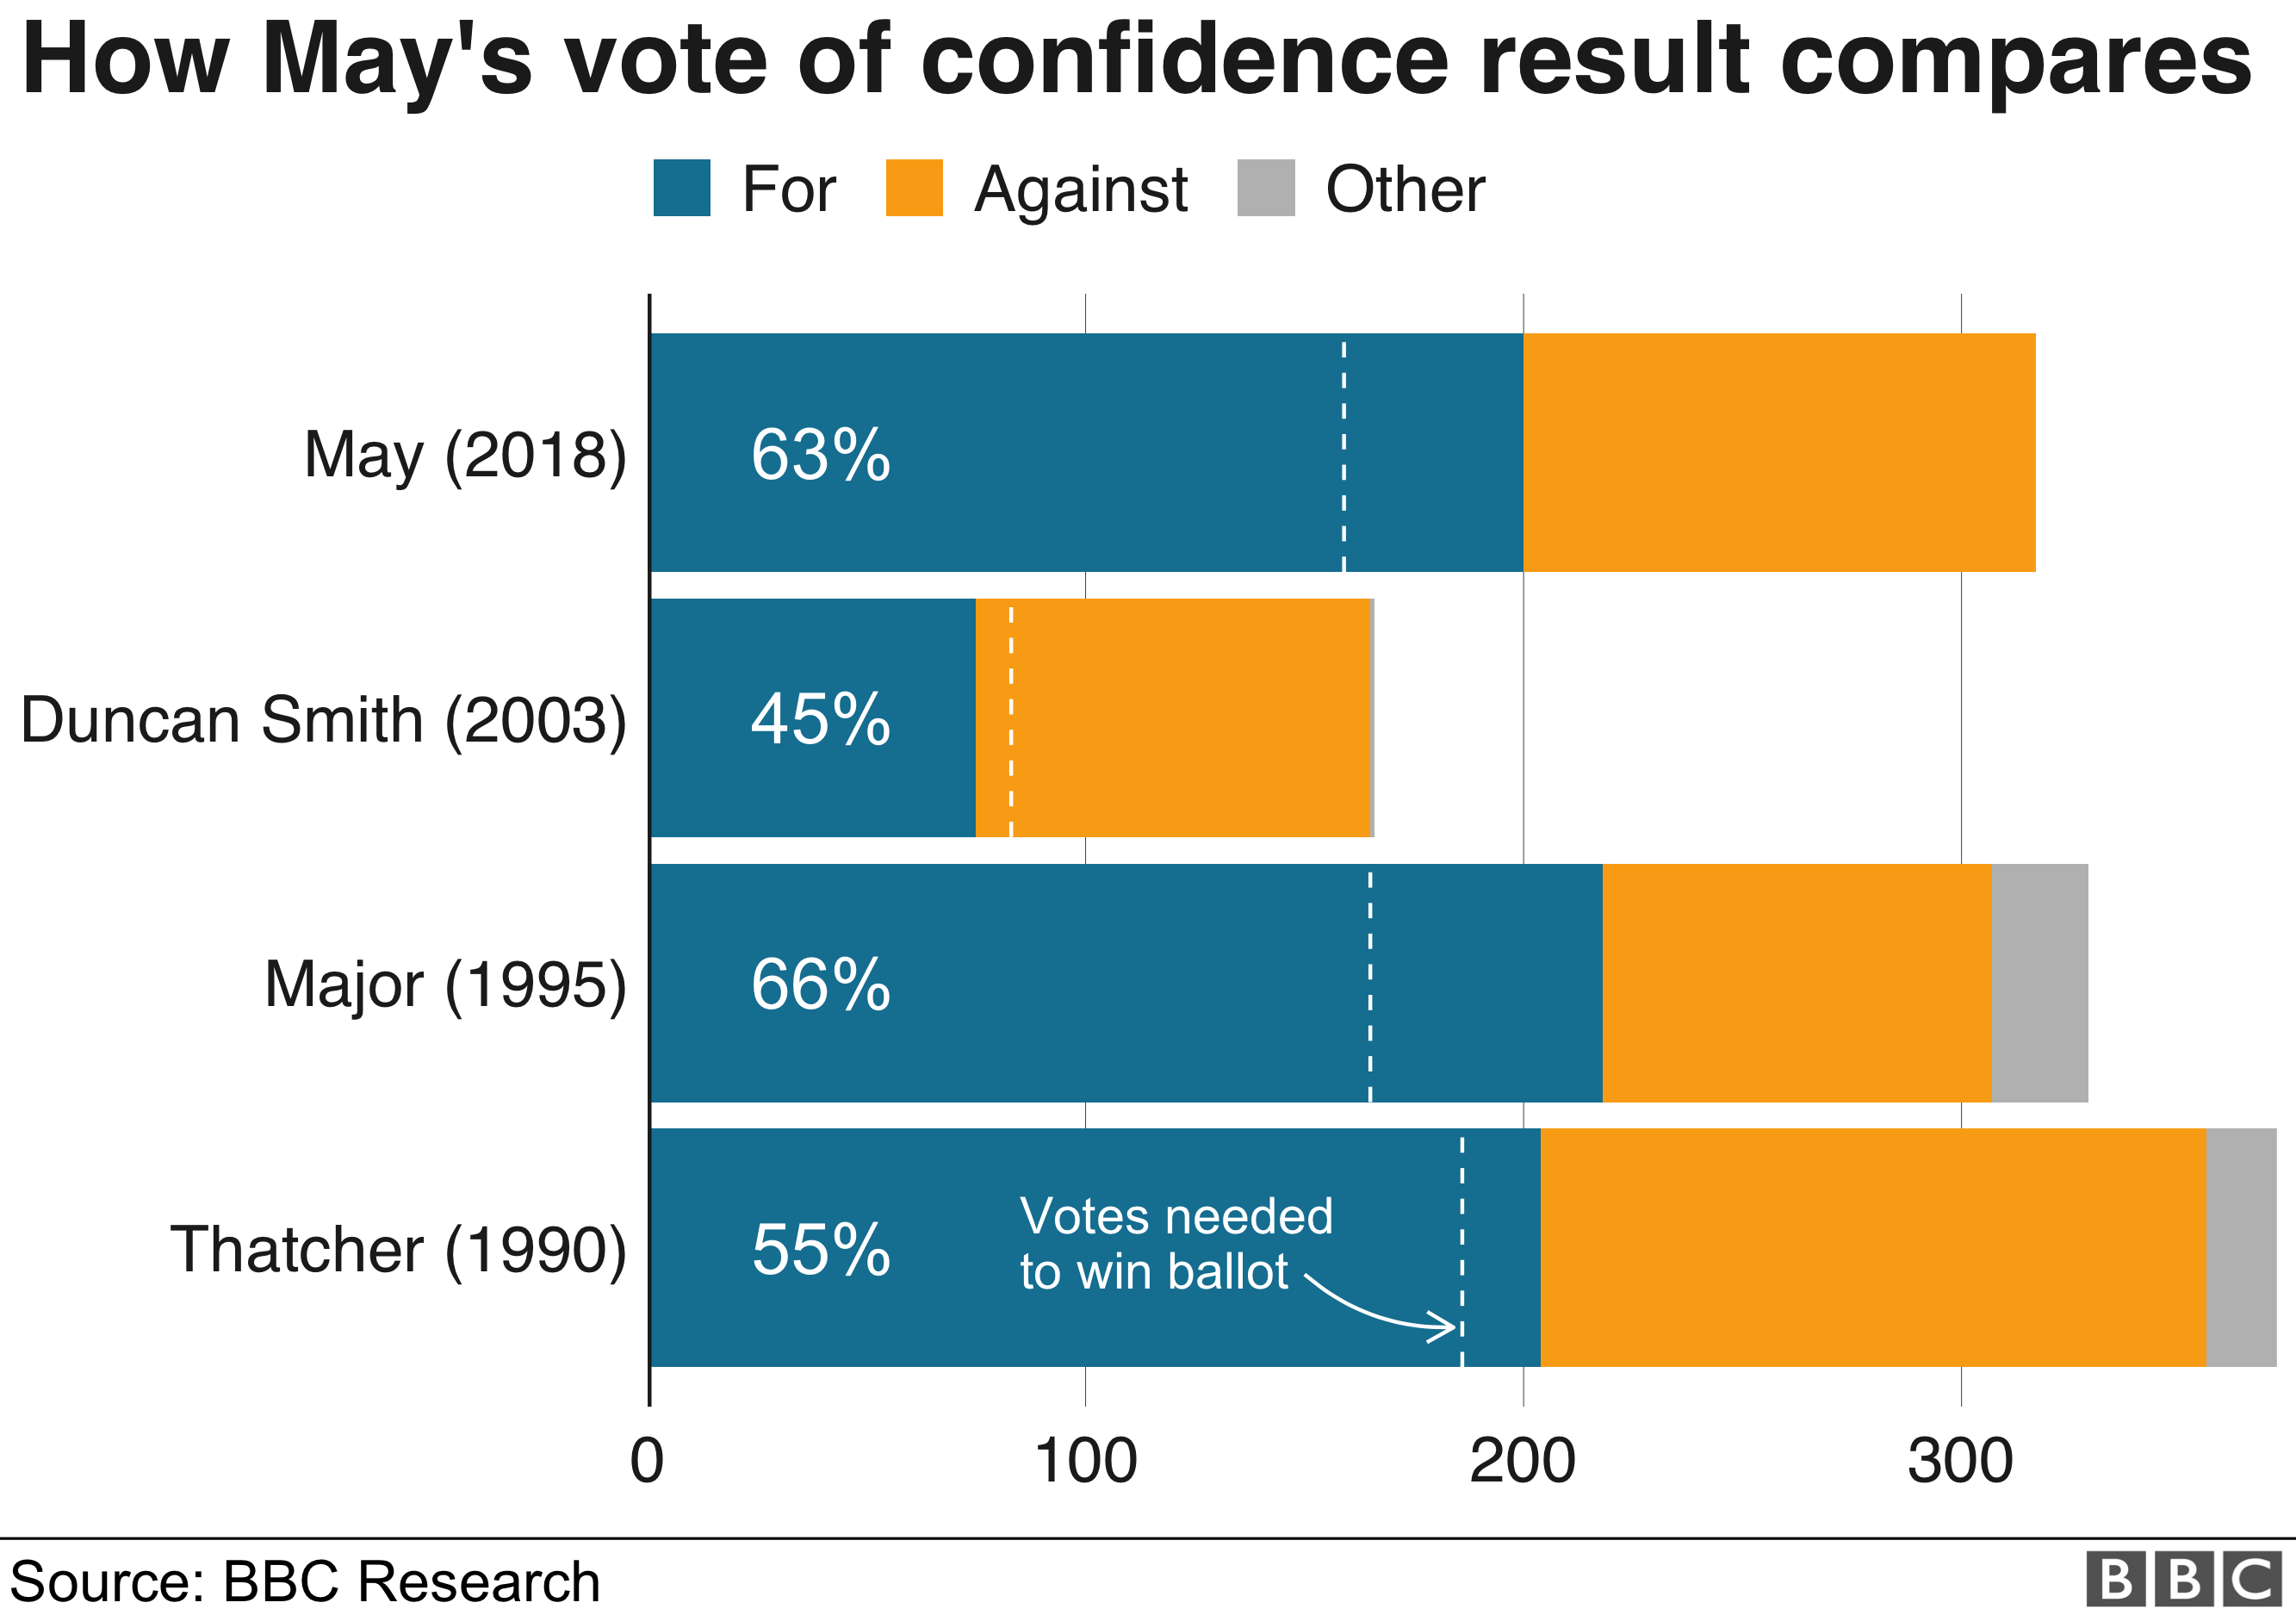 chart showing how may's confidence vote compares